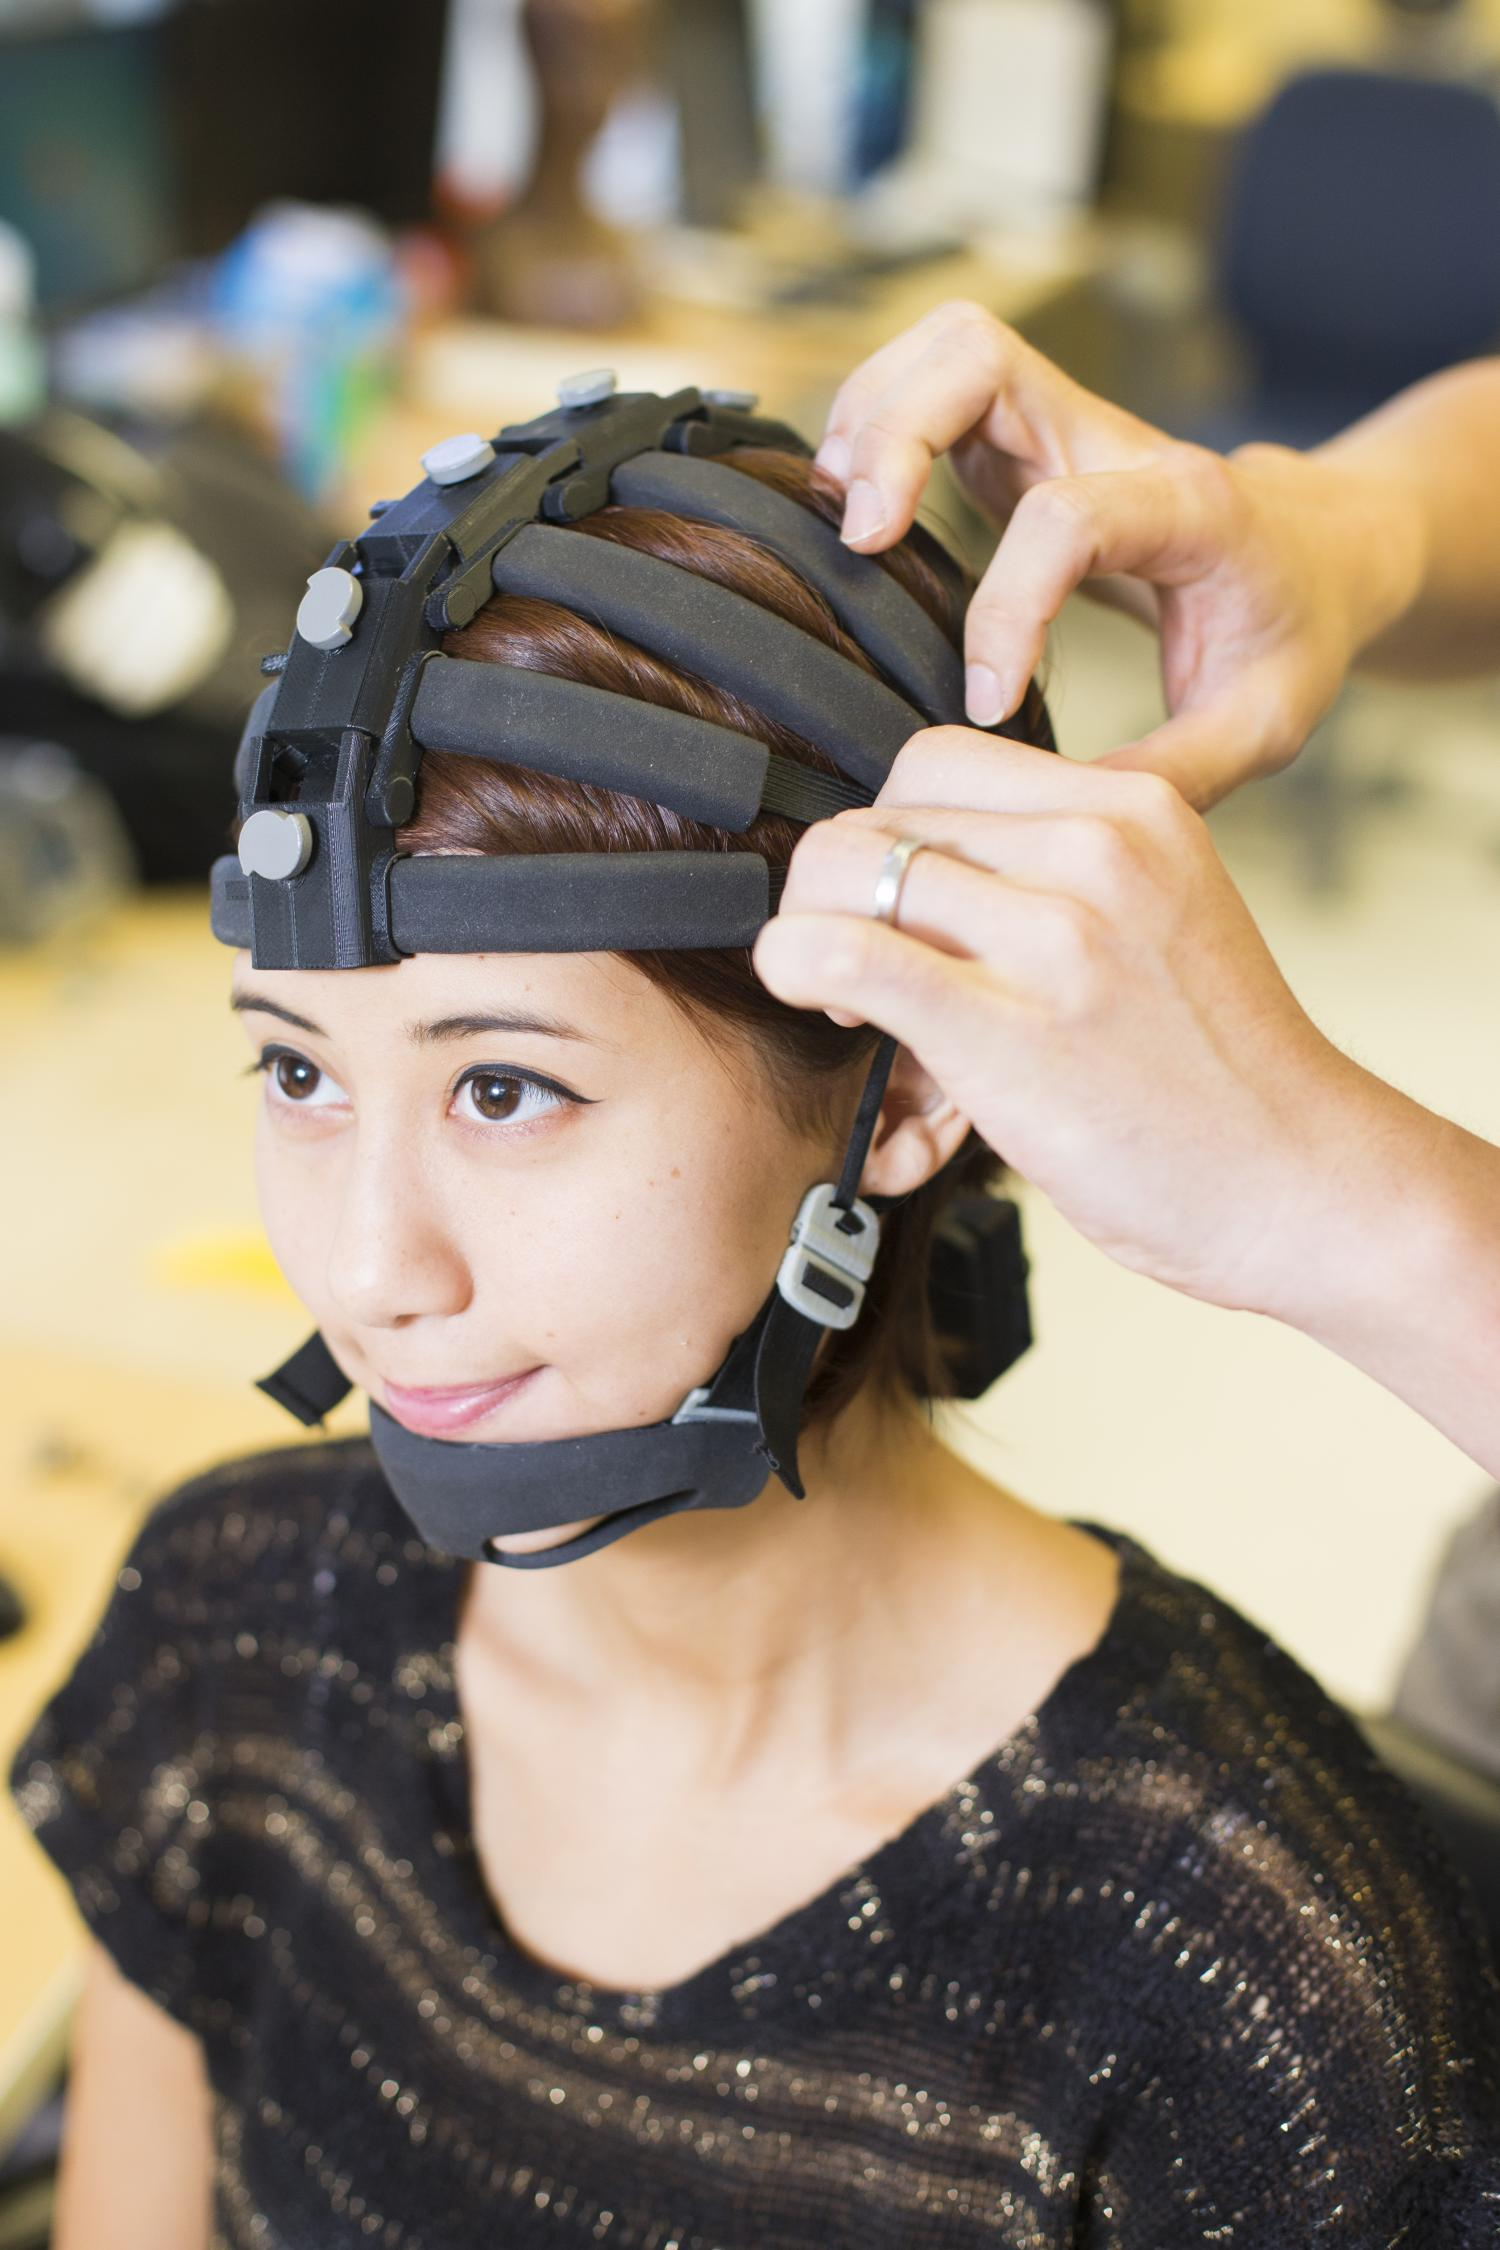 Brain Monitoring System : Brain monitoring takes a leap out of the lab